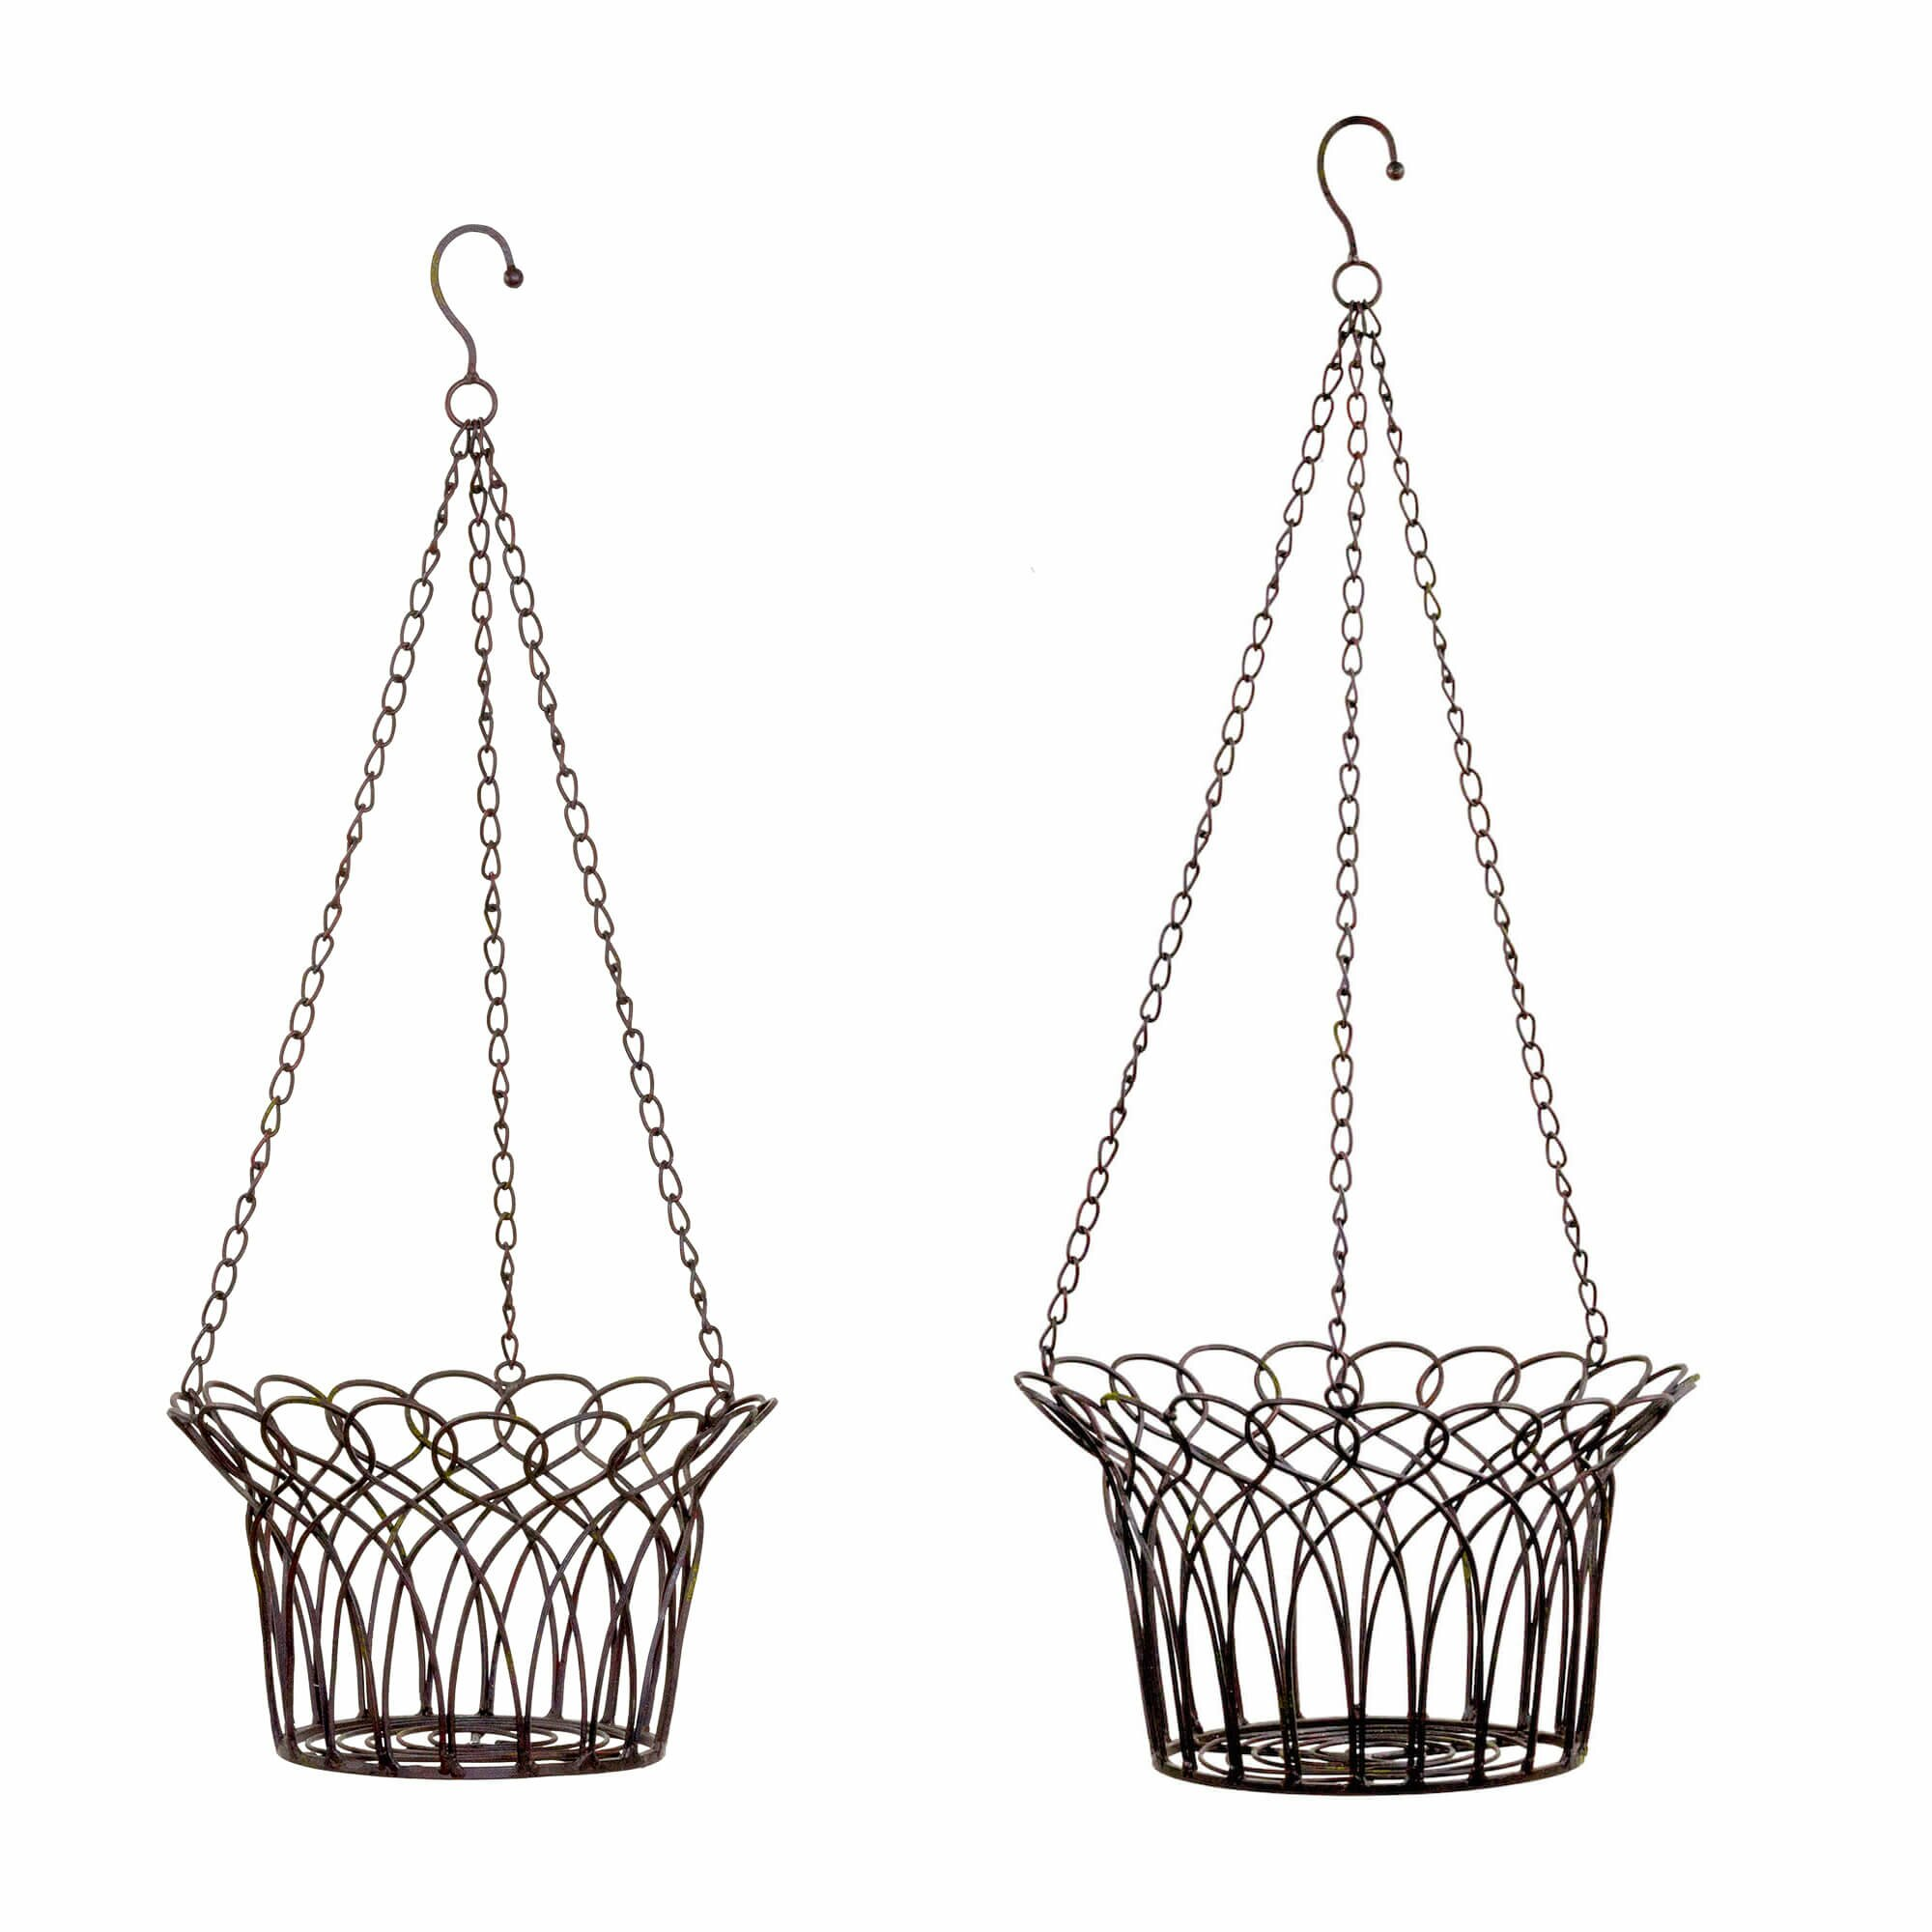 Metal Flower Hanging Baskets : Piece novelty hanging basket set wayfair